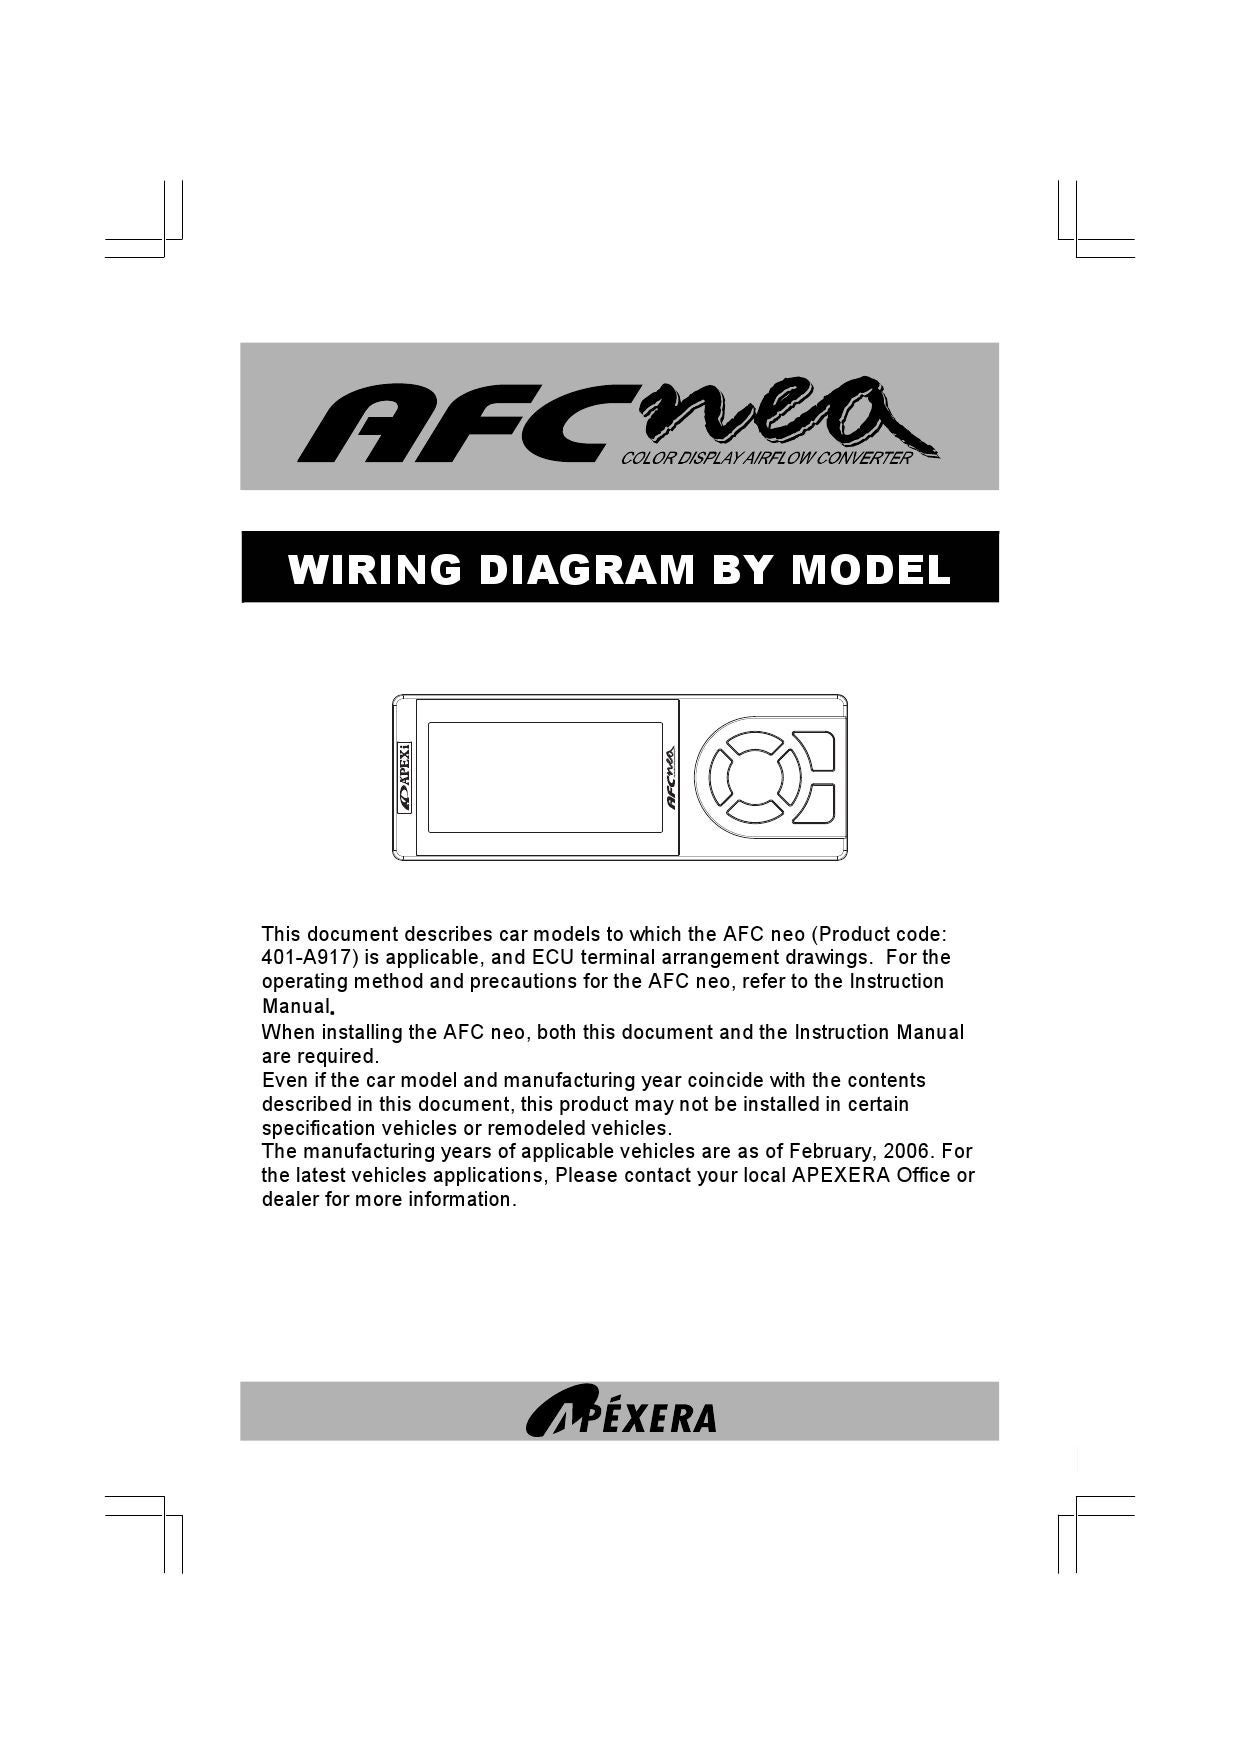 Neo AFC Wiring Diagram By Honda  Acura Club De Costa Rica Issuu - Wiring diagram honda l15a